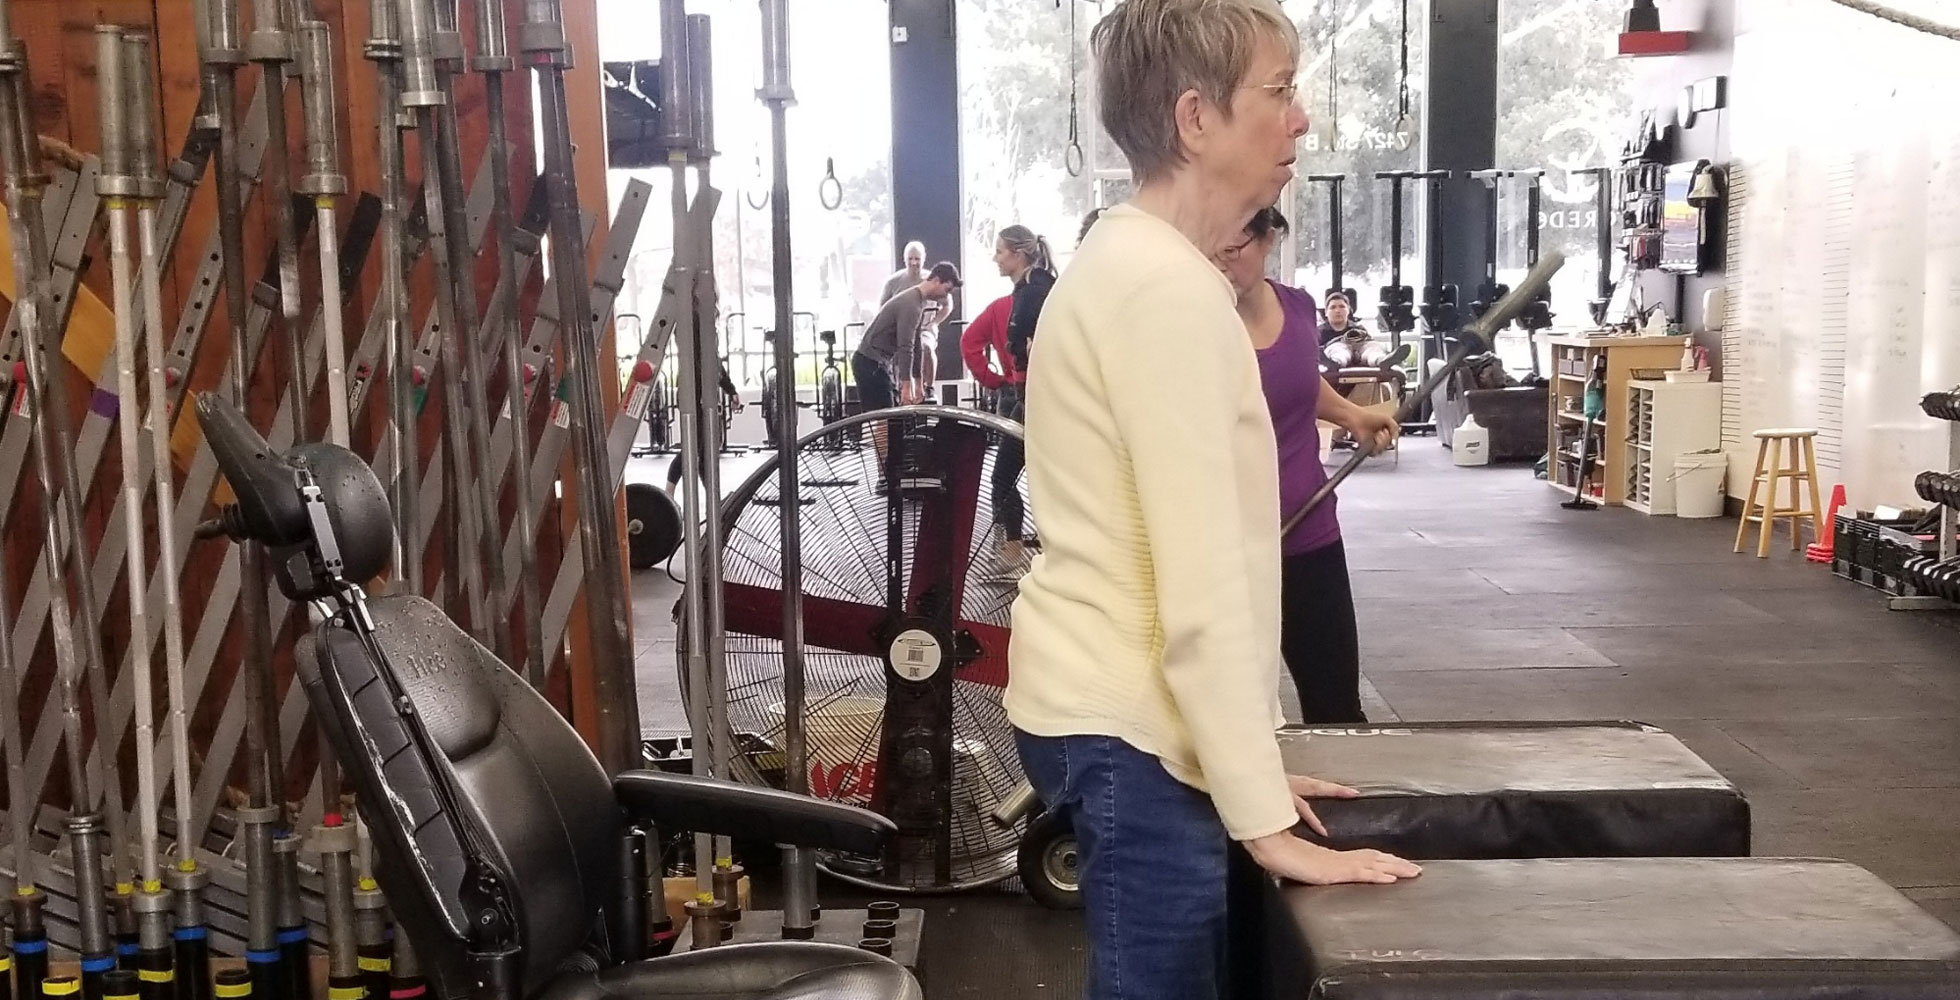 Fitness Classes In Novato For Persons With Special Needs